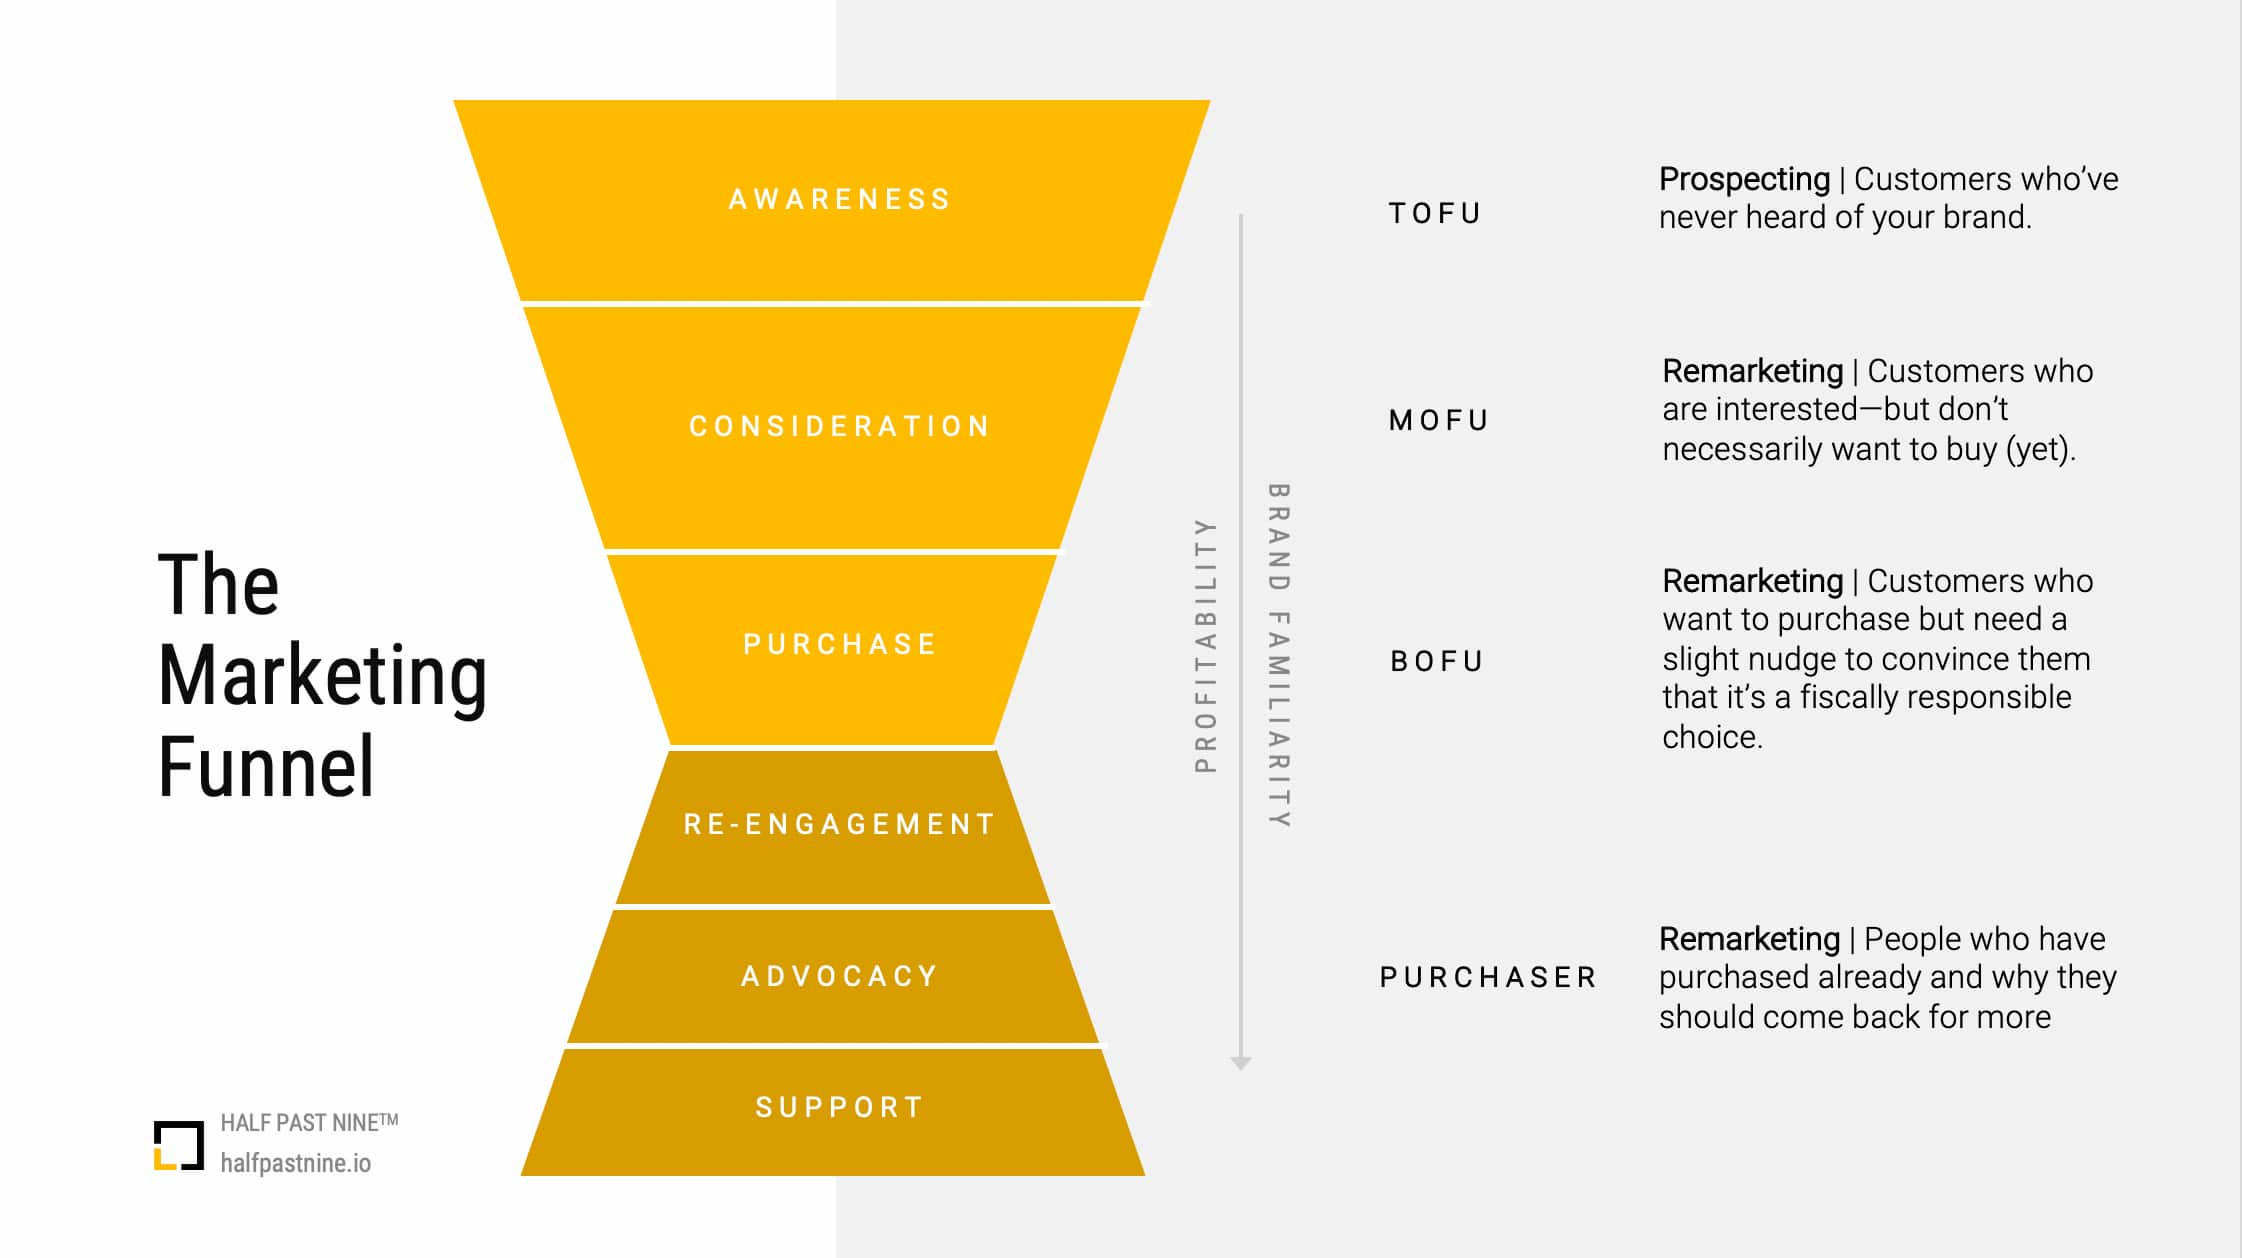 An infographic describing the marketing funnel, the key stages to remember for digital marketing, and the key points for succeeding in creating a successful marketing funnel.